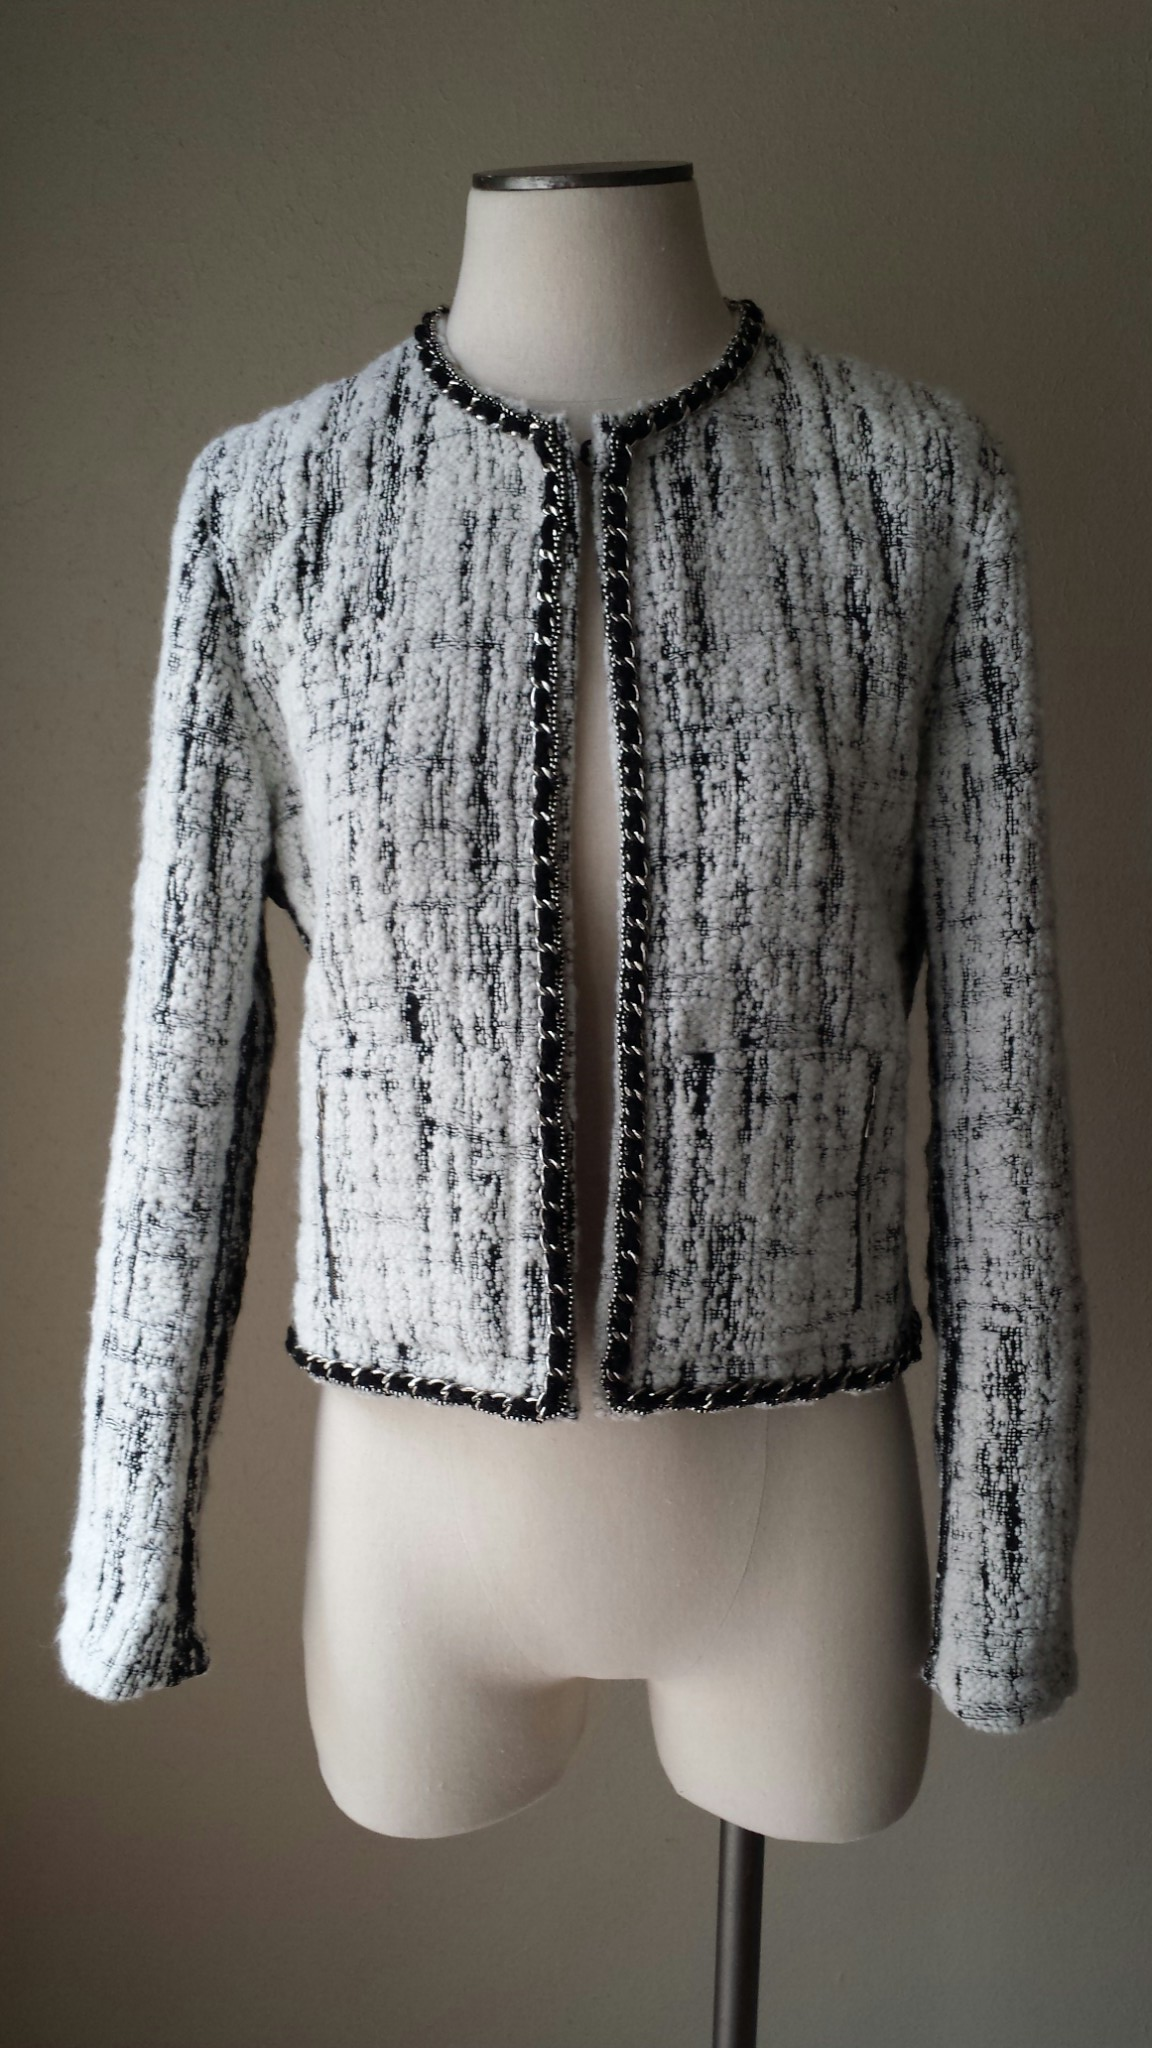 Chanel-style Jacket U2013 Sewing Projects | BurdaStyle.com